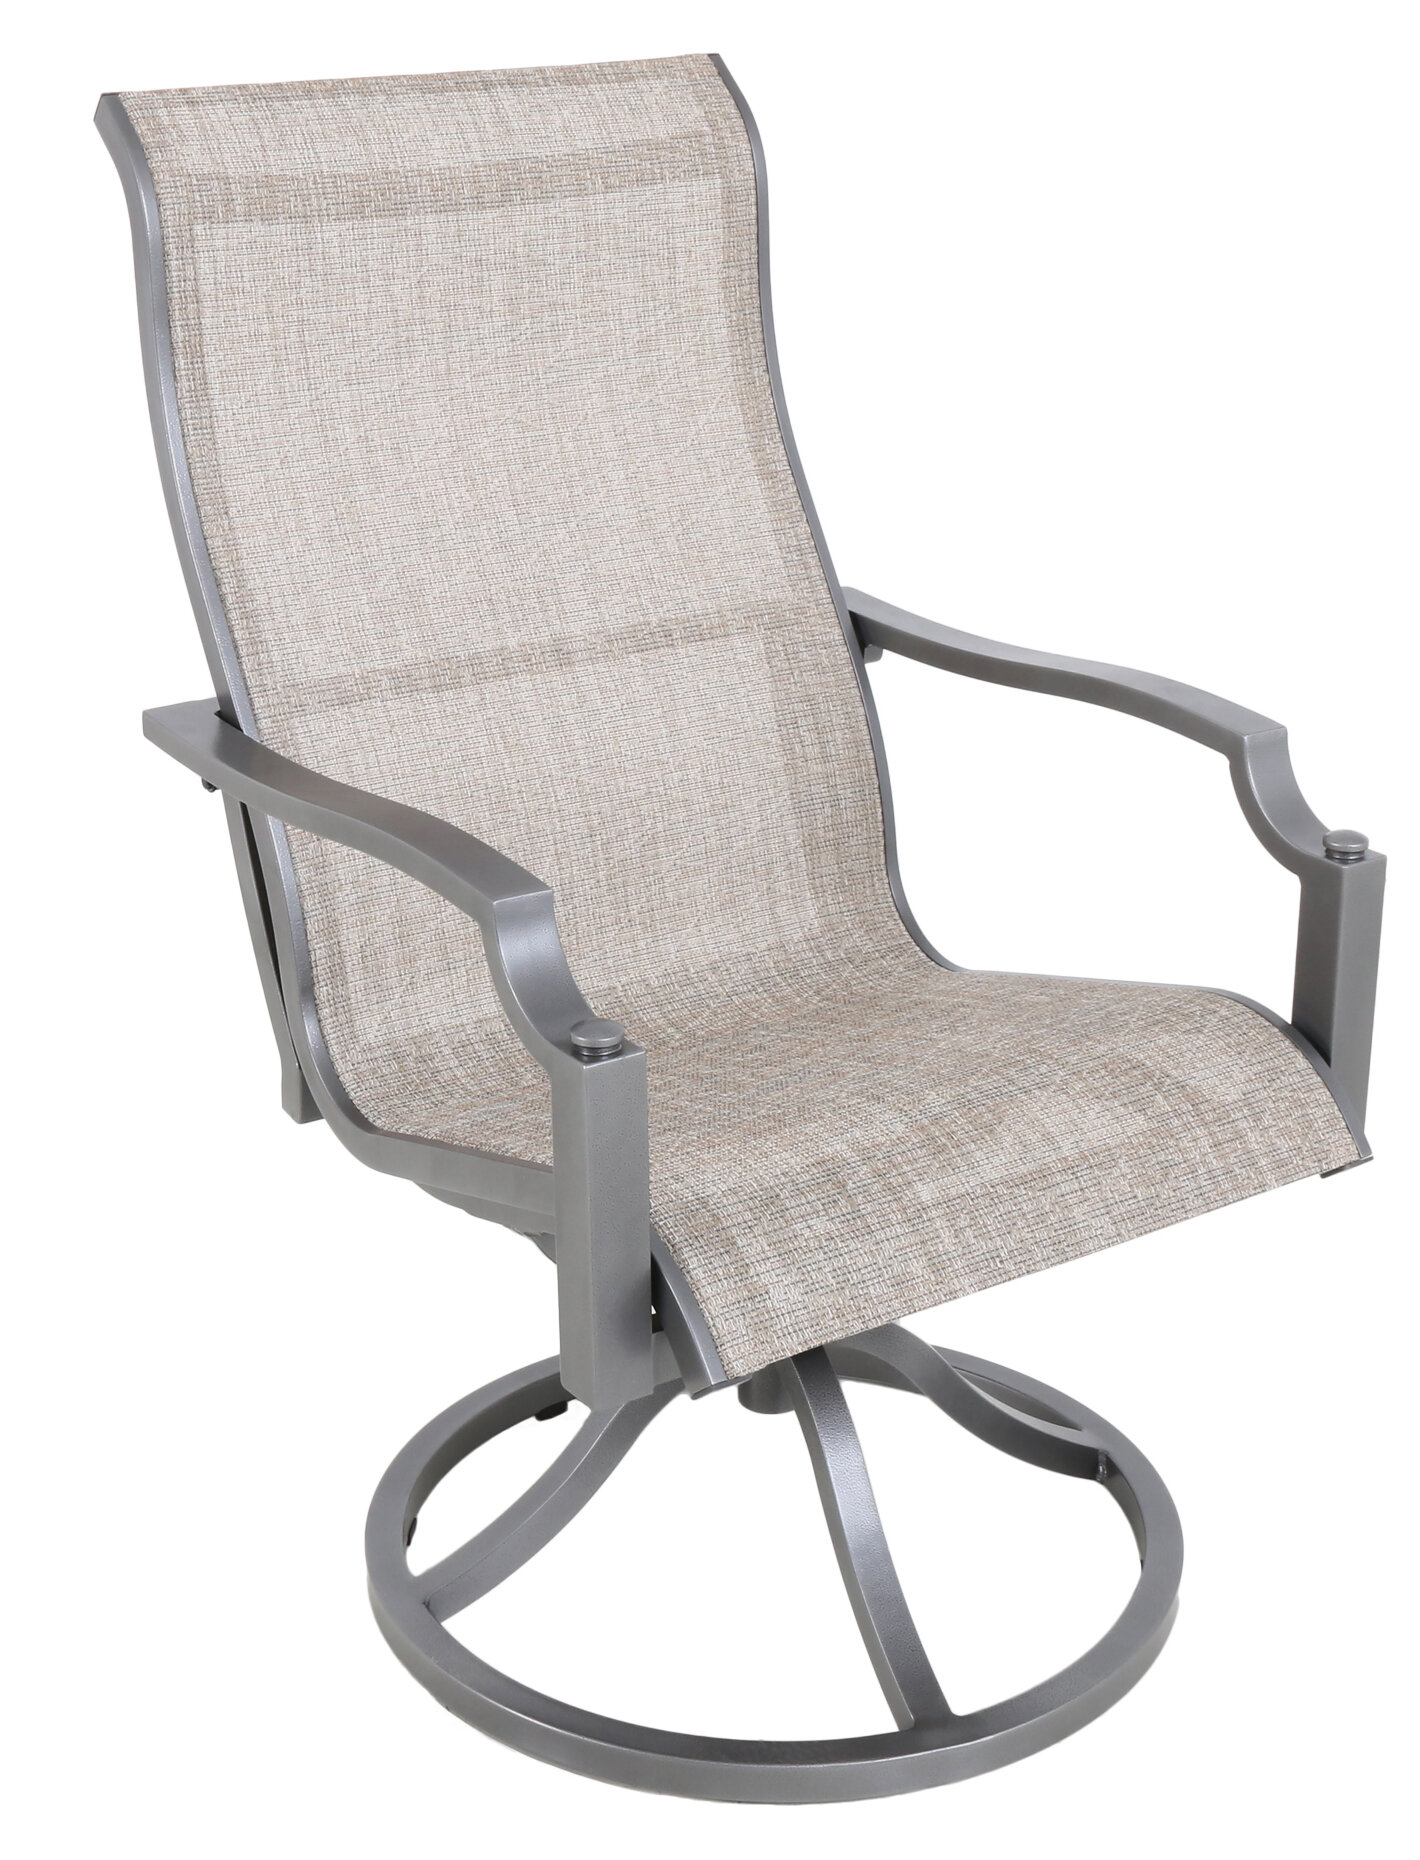 Exceptionnel Red Barrel Studio Konevsky Sling Swivel Patio Dining Chair ...